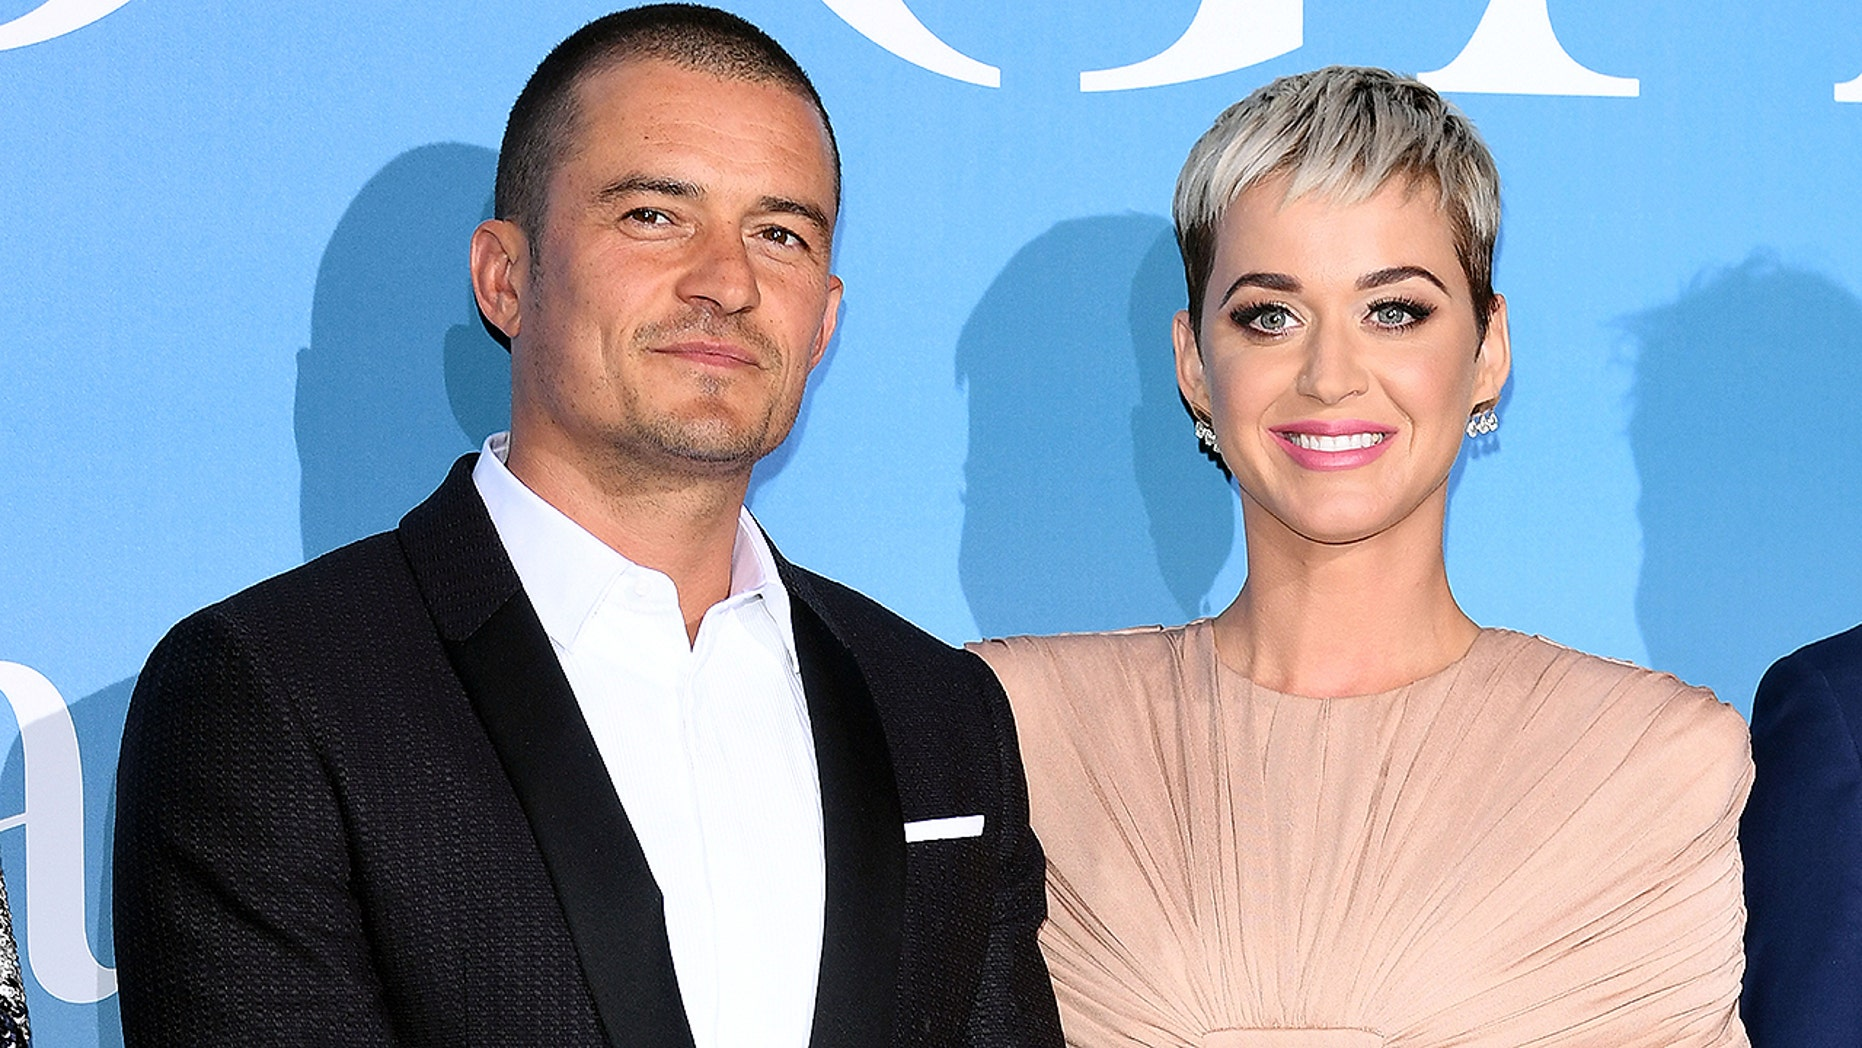 Katy Perry reveals how Orlando Bloom popped the question